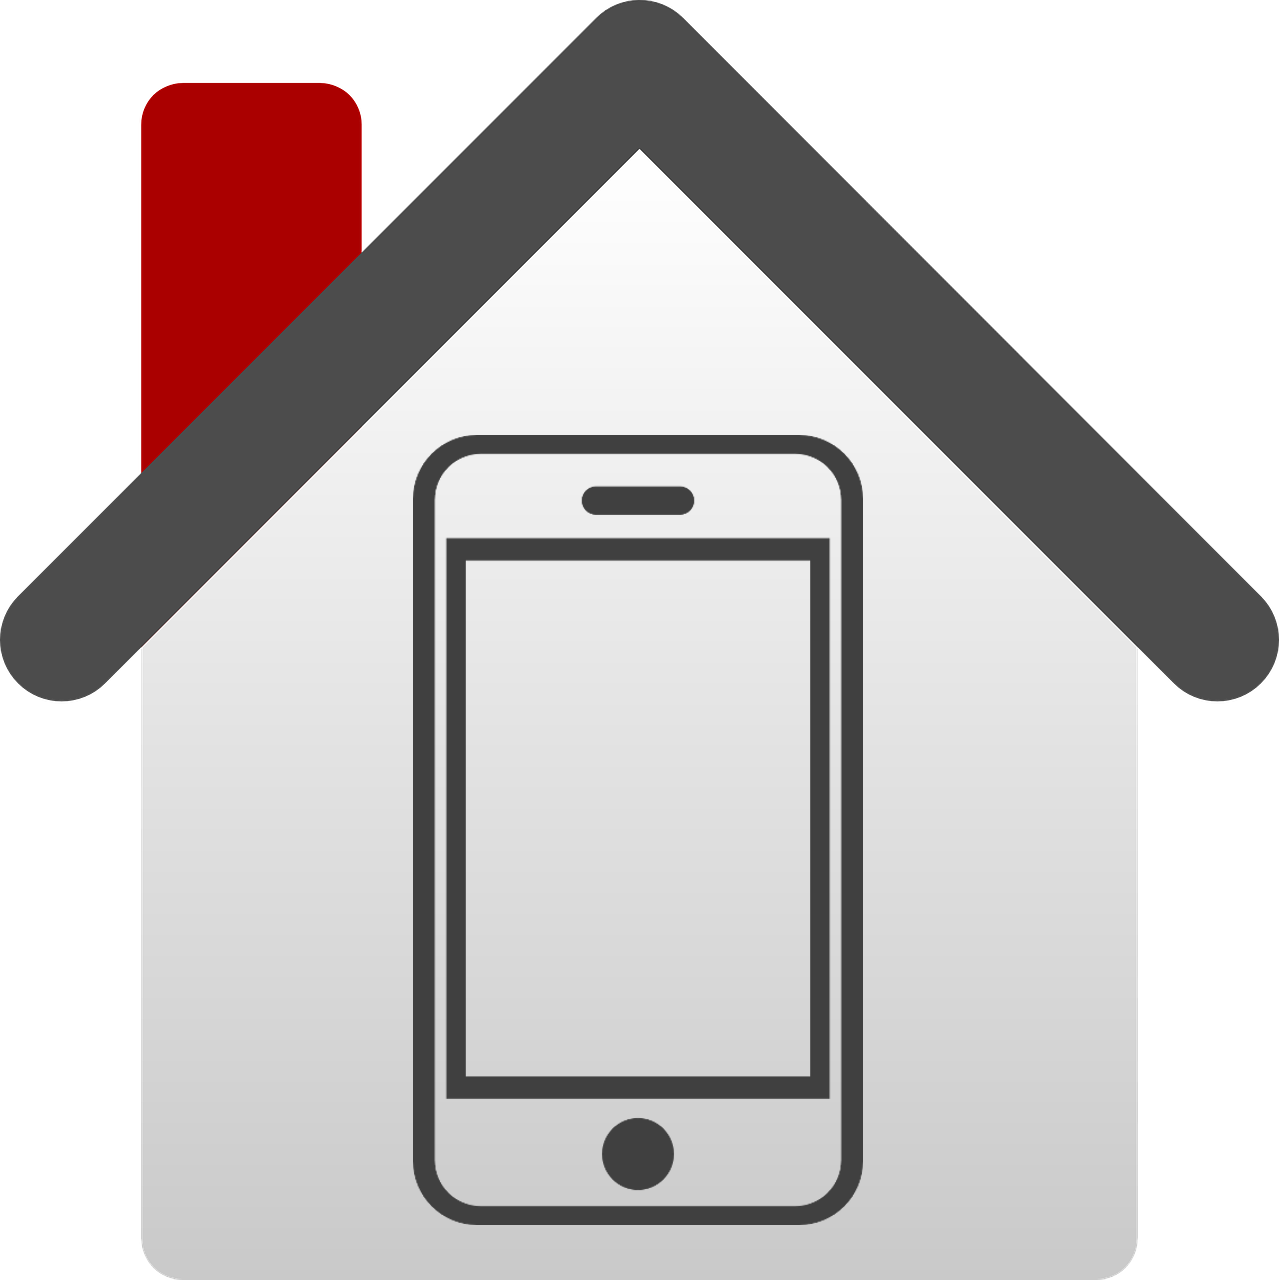 Icon Smarthome.family.blog